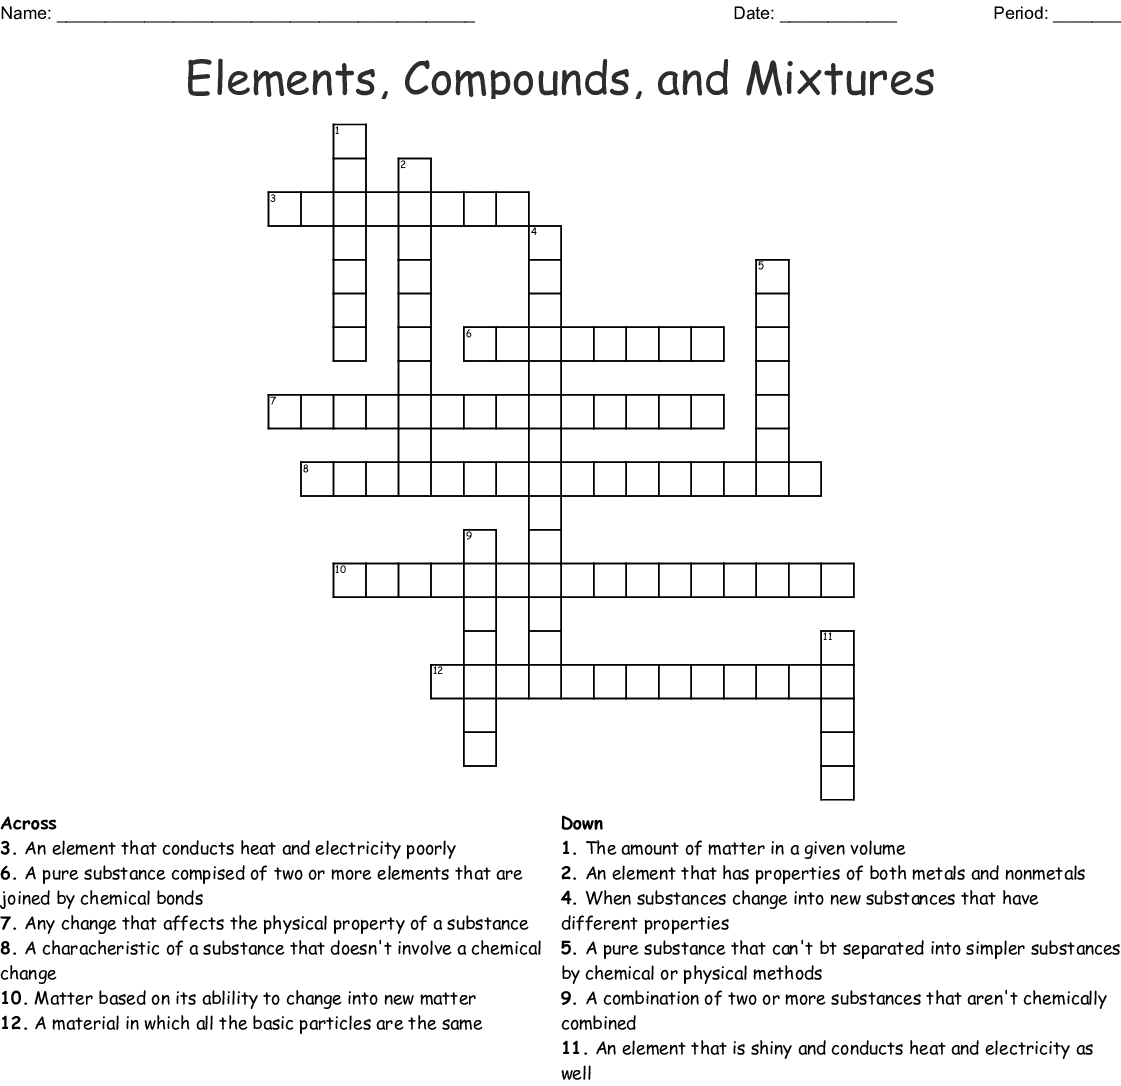 Atoms Elements Compounds And Mixtures Worksheet Answers